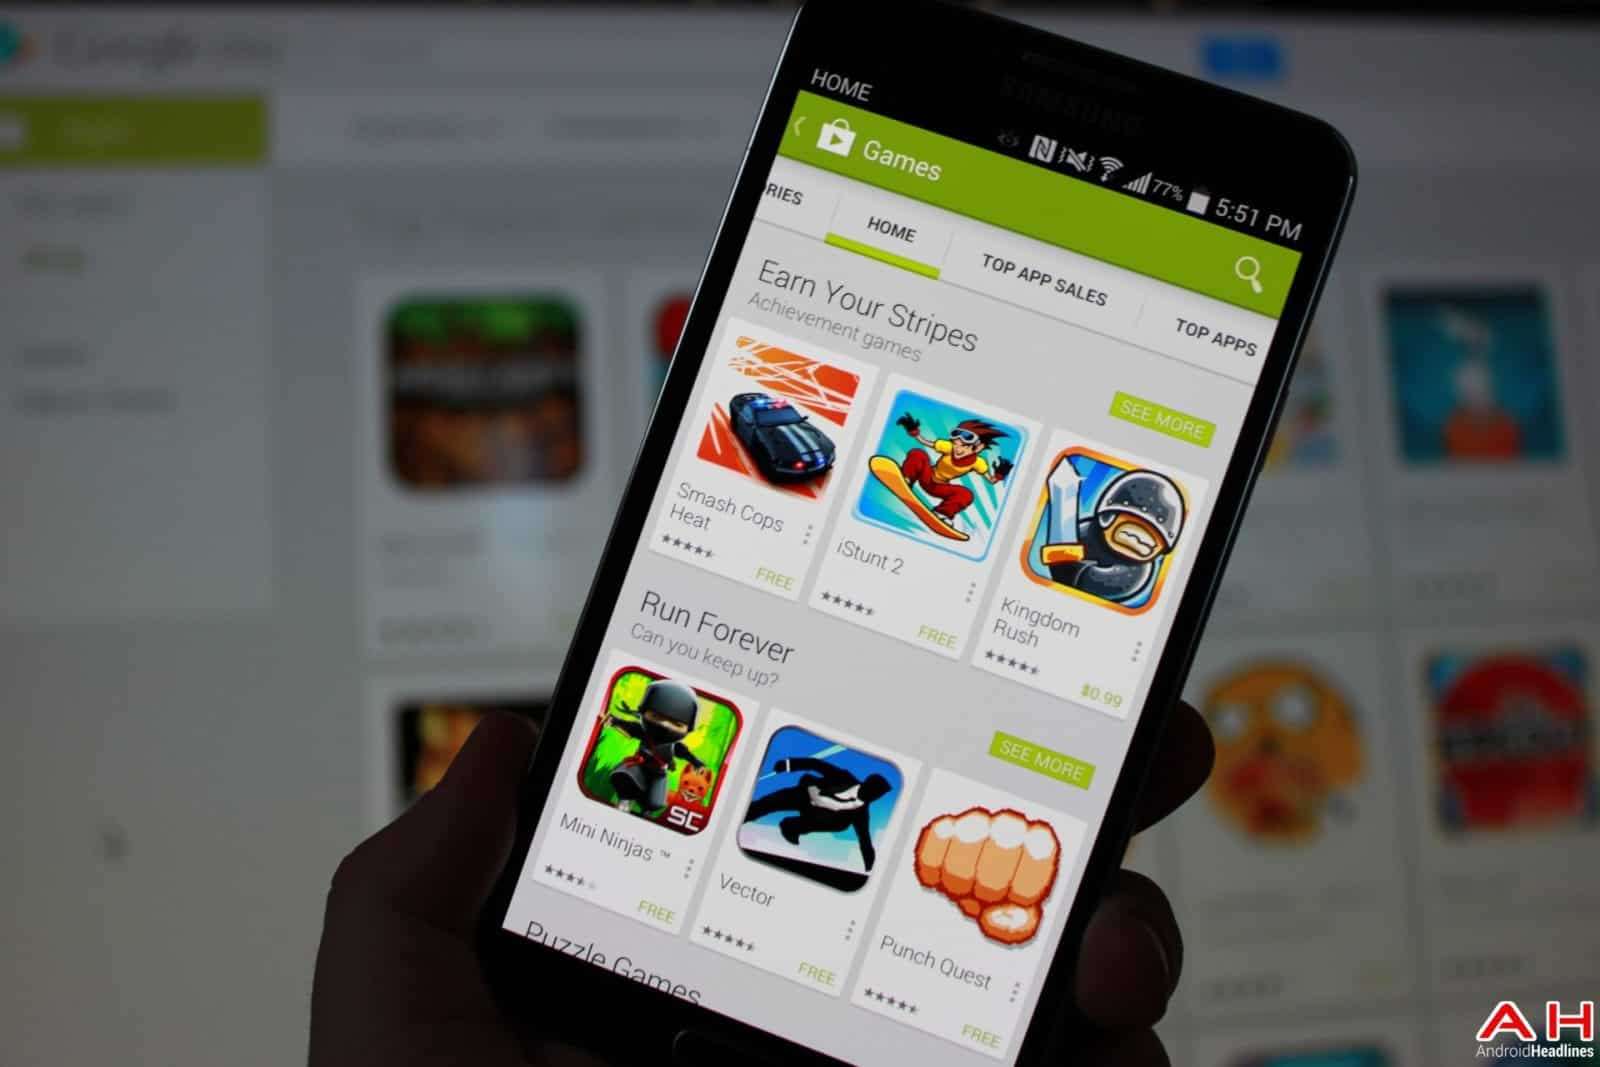 AH Google Play App Store Game of the week top 10 games android 1.4